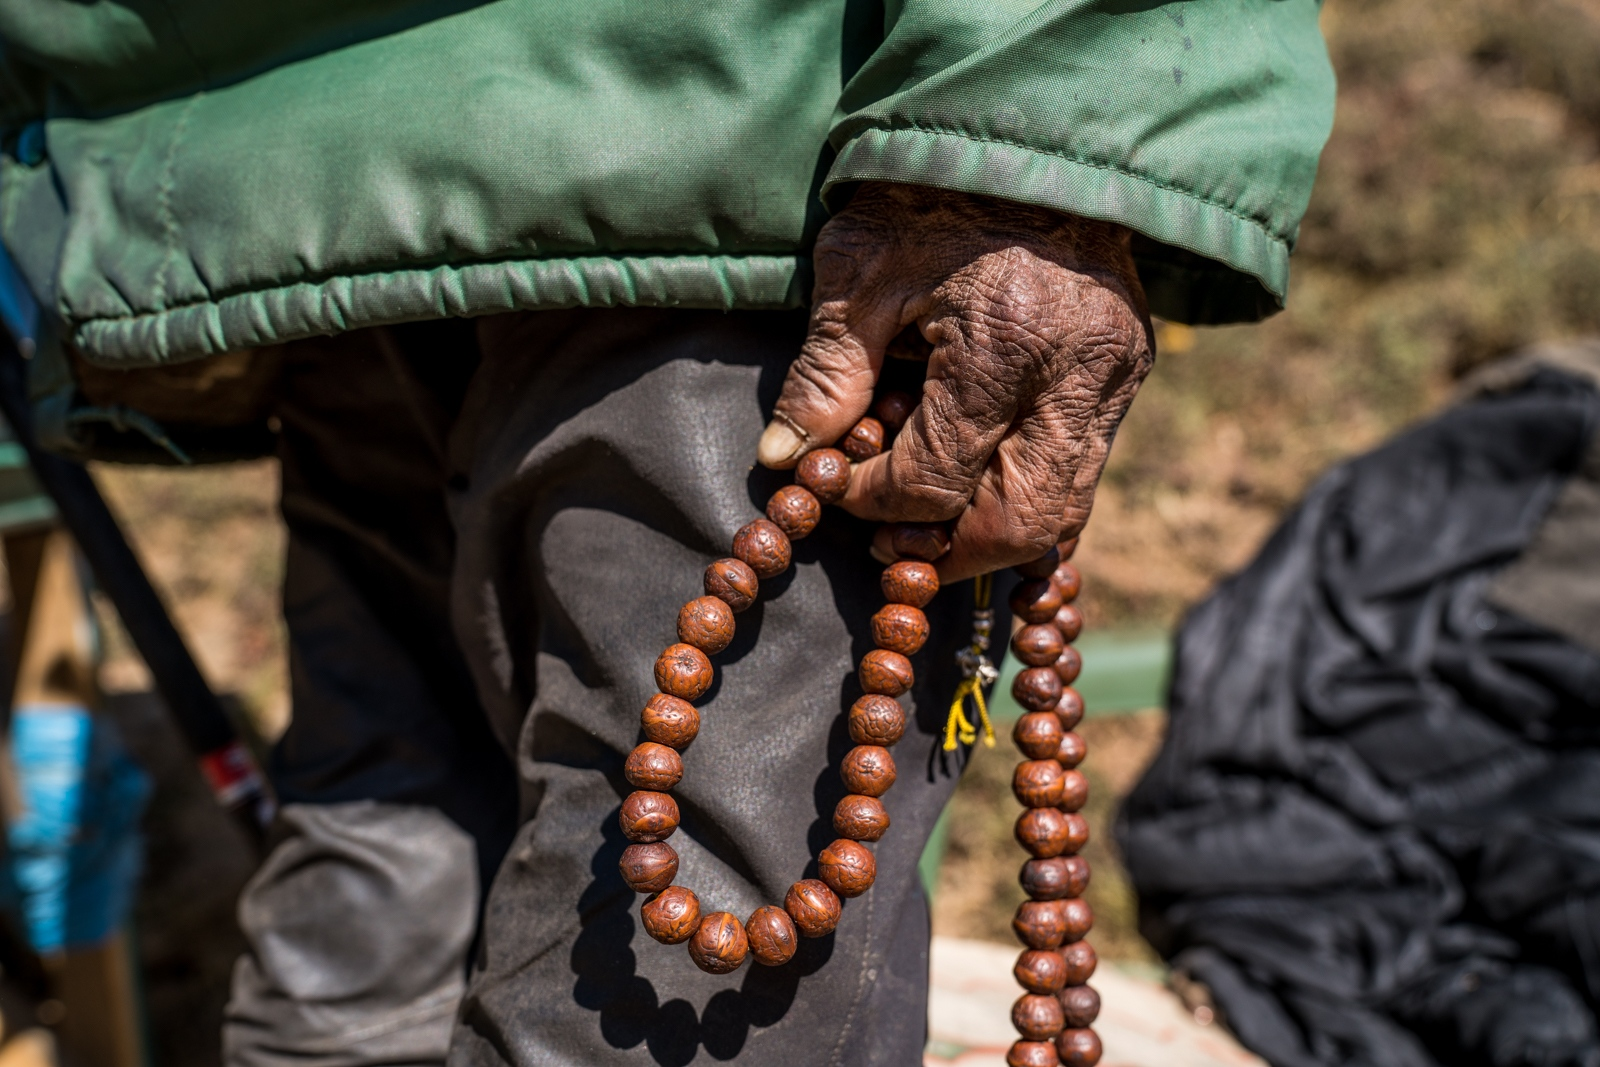 Buddhist prayer beads.